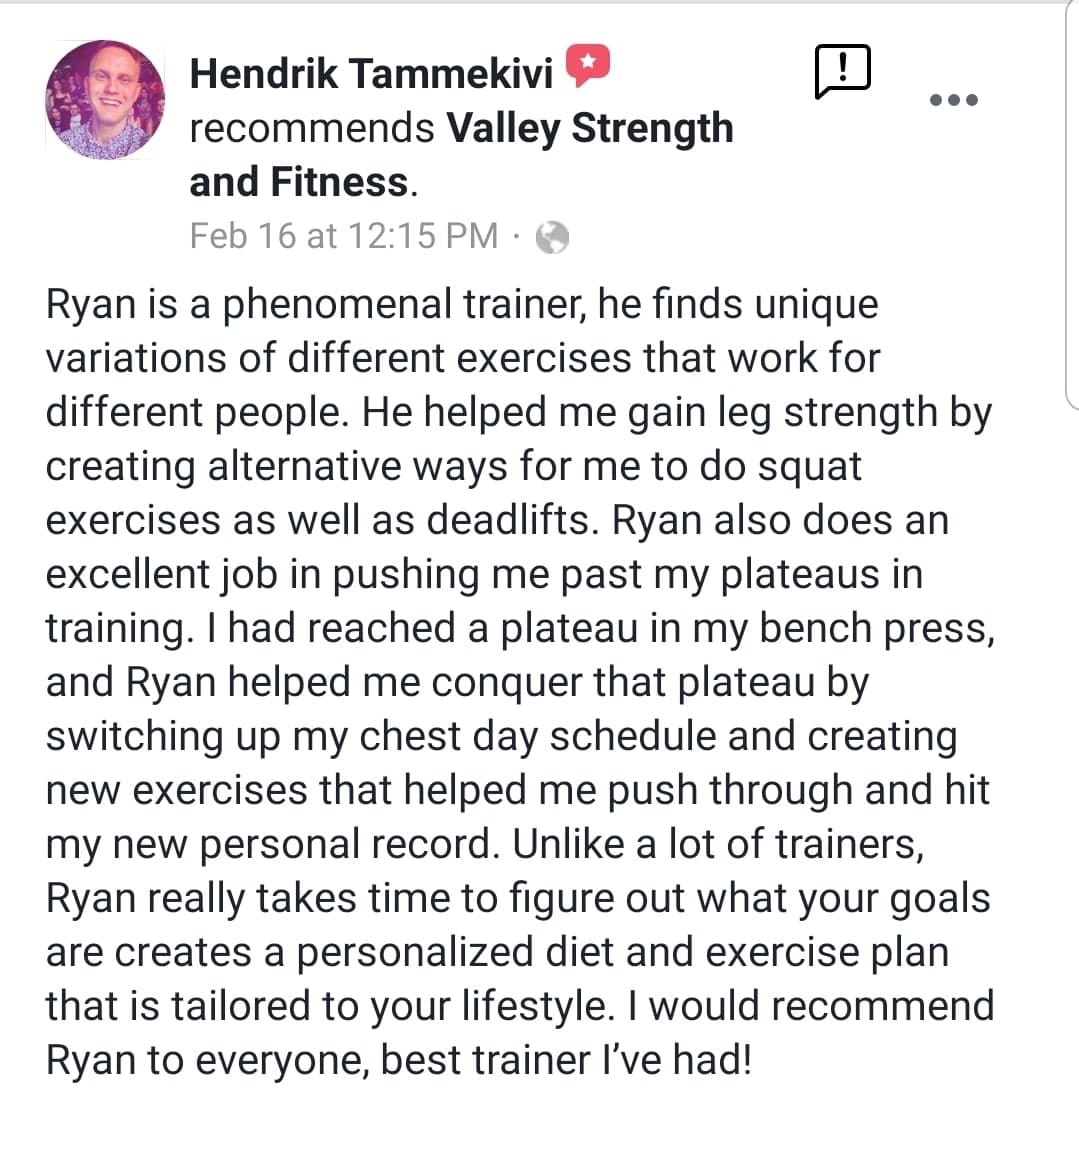 Personal Training - Testimonial Hendrik Review 1